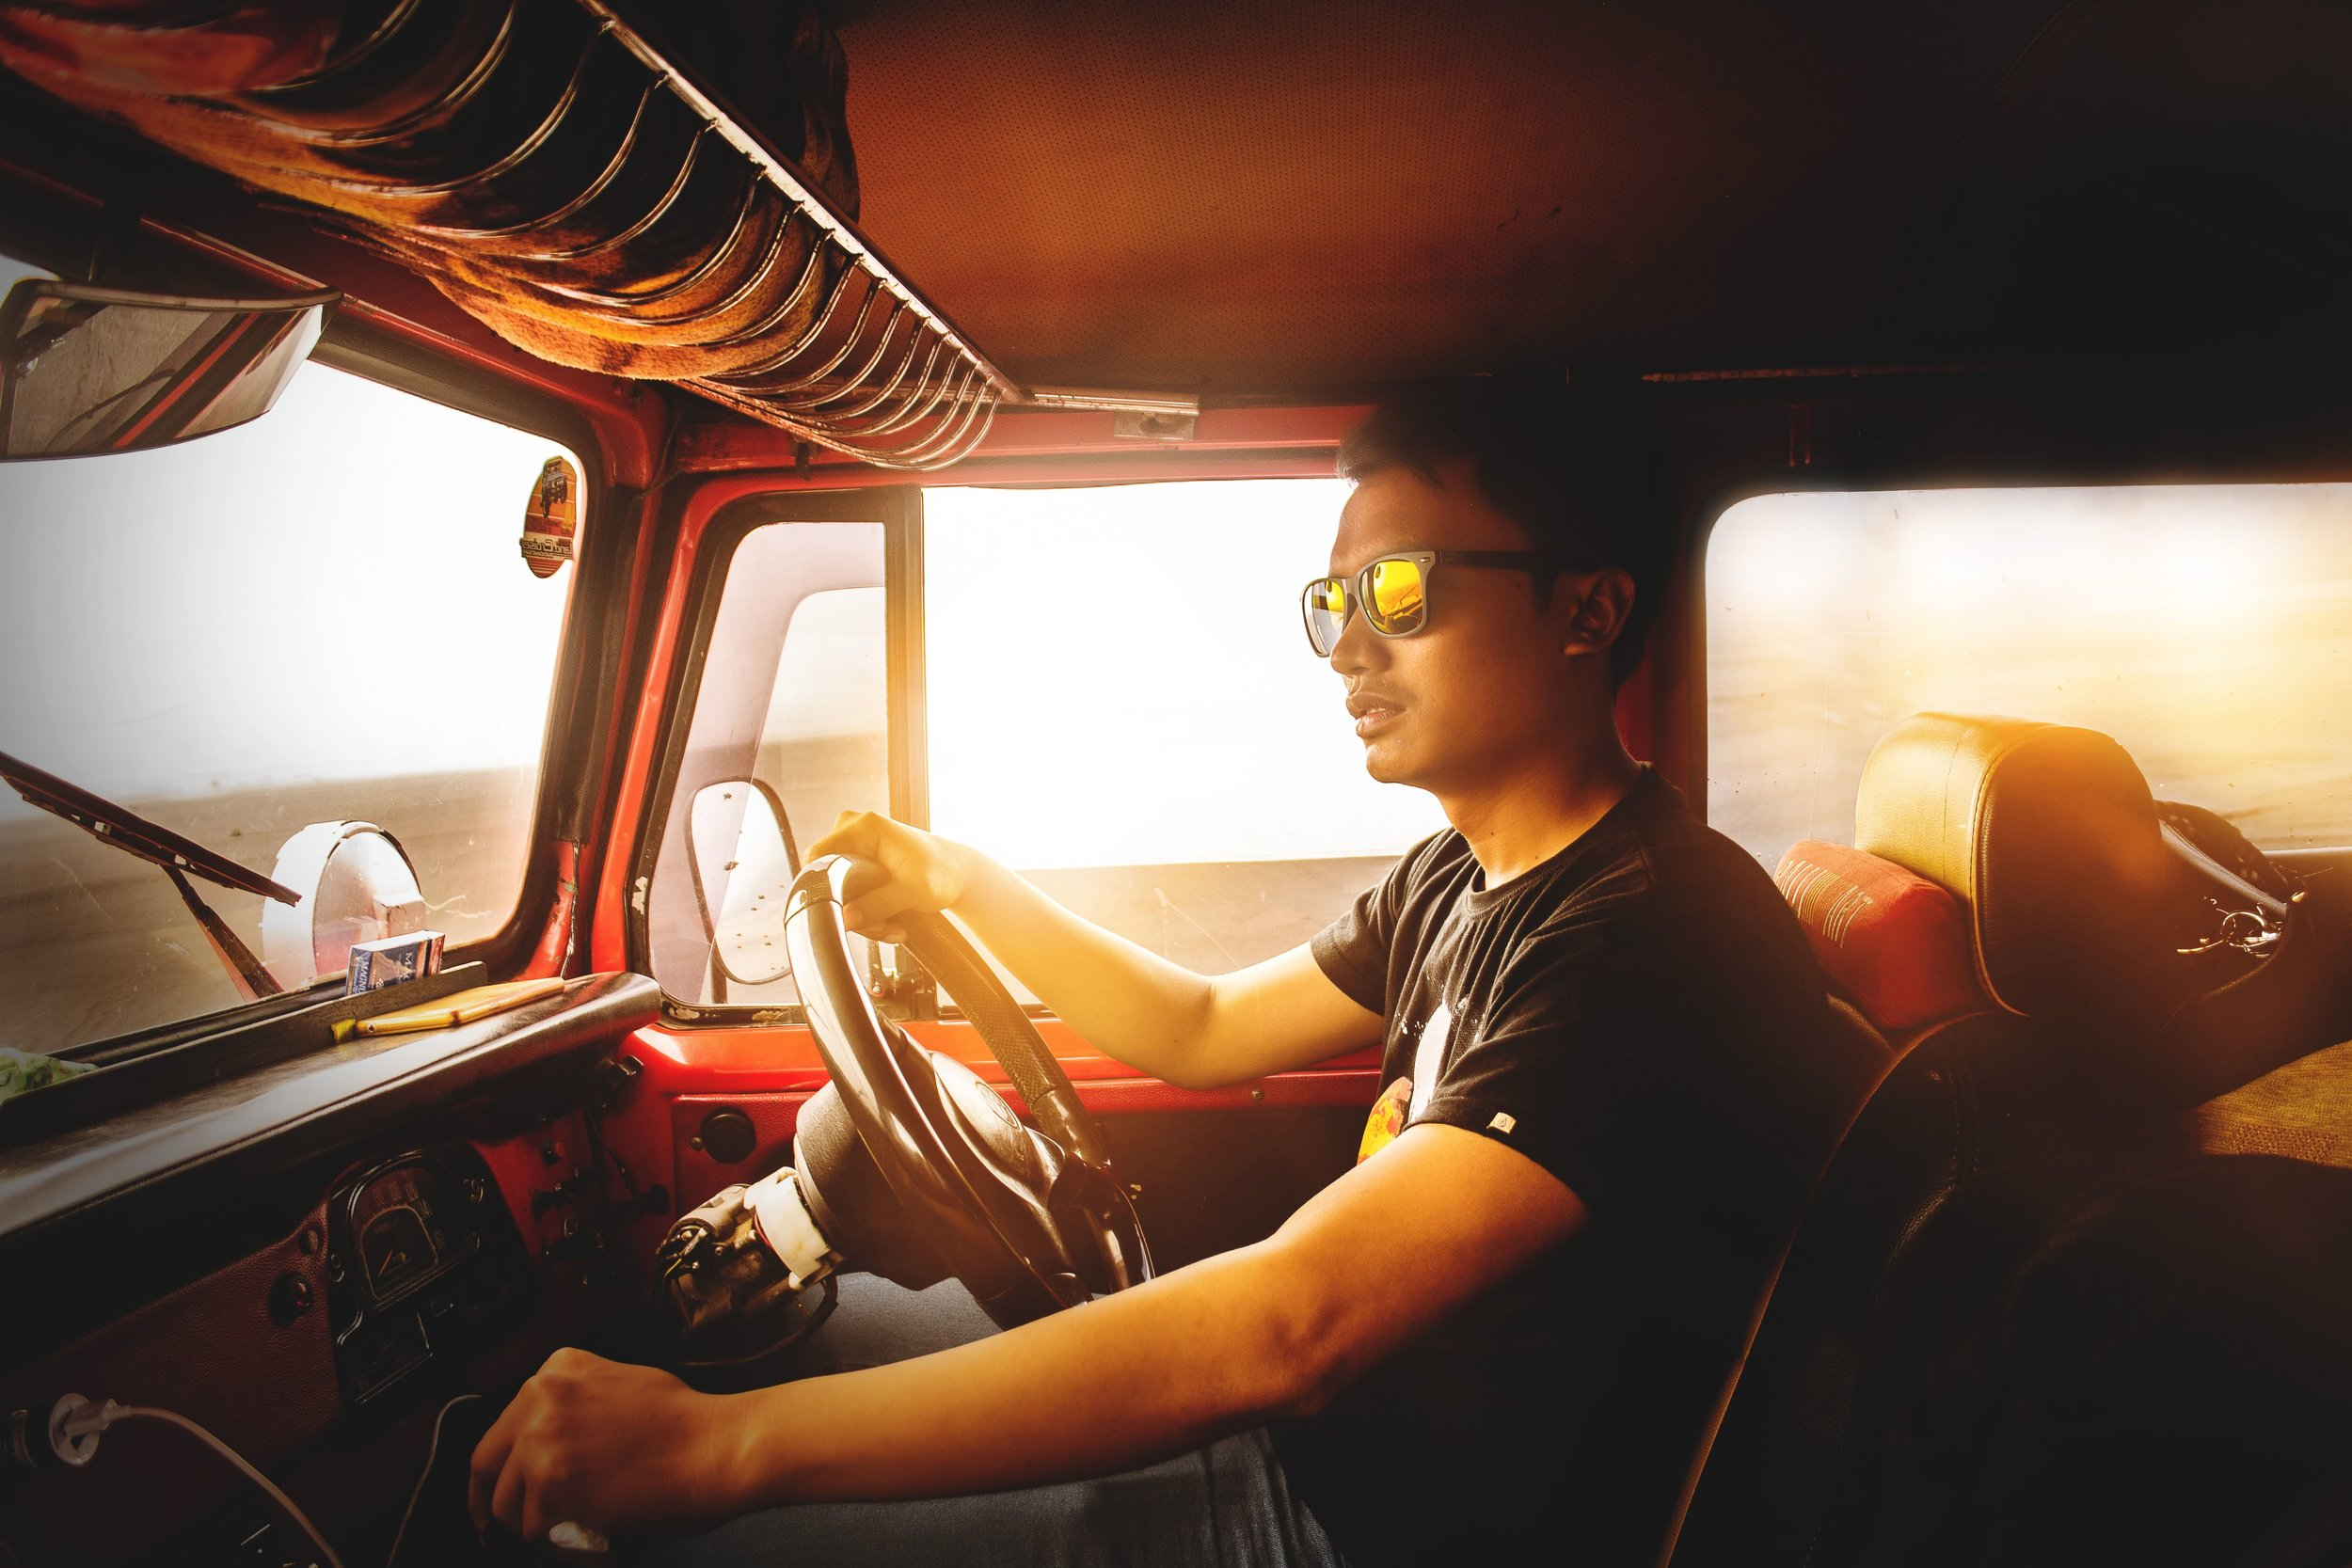 Take the time to study your financial options before purchasing a new car. New technology changes in the FinTech world are constantly changing how leasing vs. financial offers are made by dealerships, so review your options — even if it's not your first car.